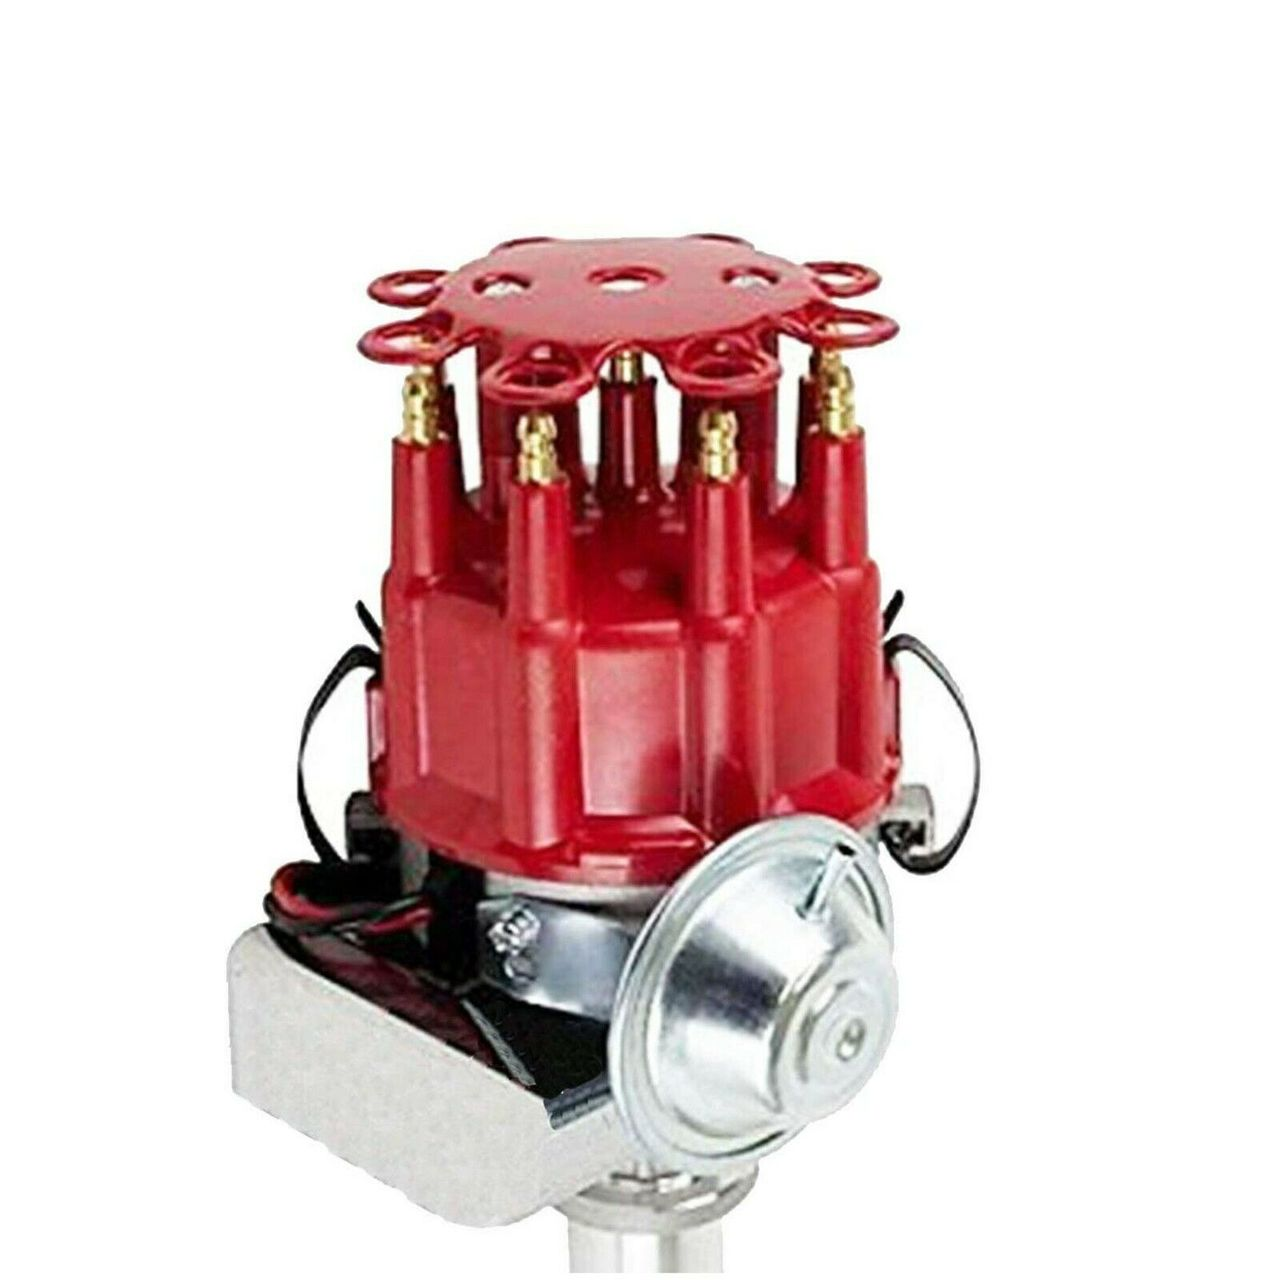 A-Team Performance SBC CHEVY/GM 350 Small Spark Plug Wires Cap Distributor Coil + Red 8Mm Over Valve Cover